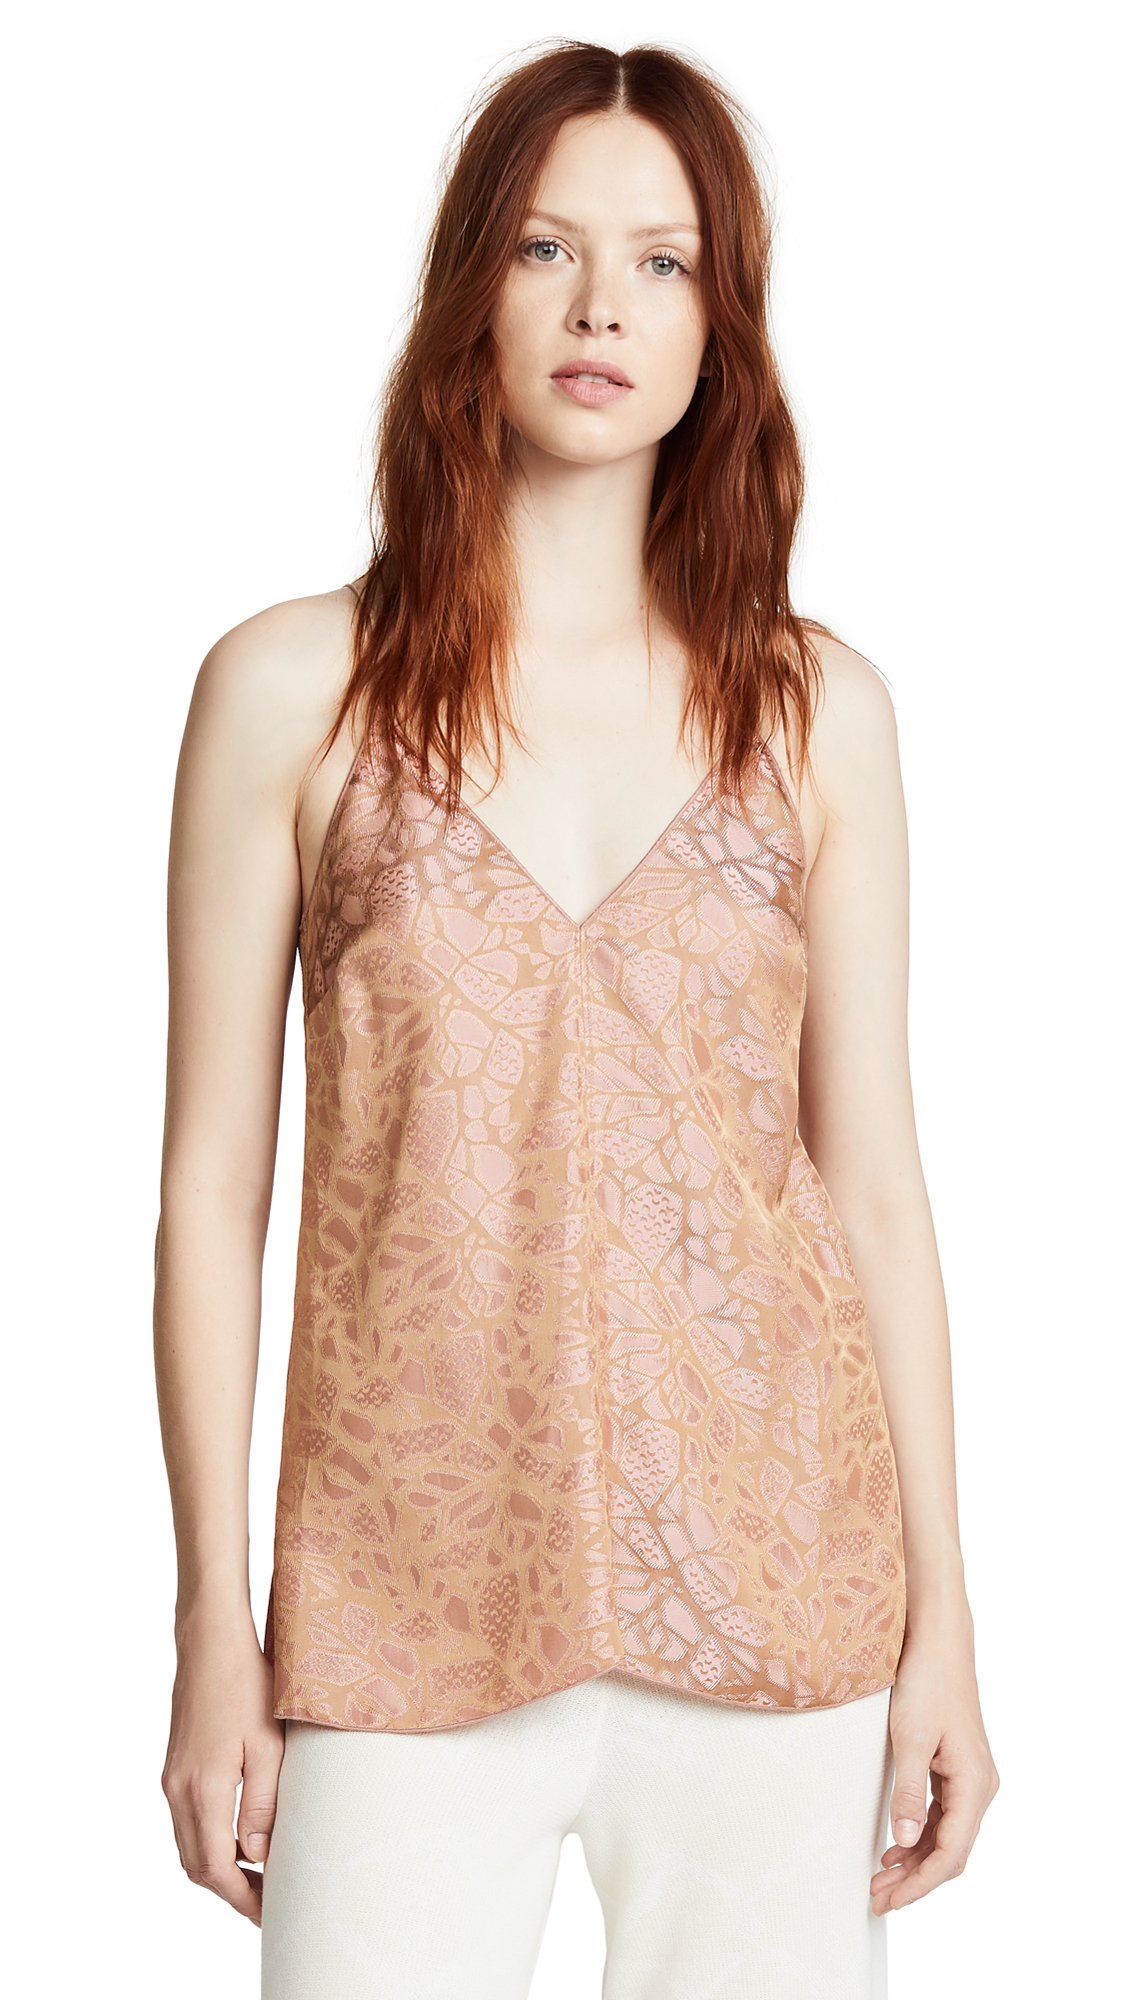 GIADA FORTE Autumn Leaf Top in Rosa